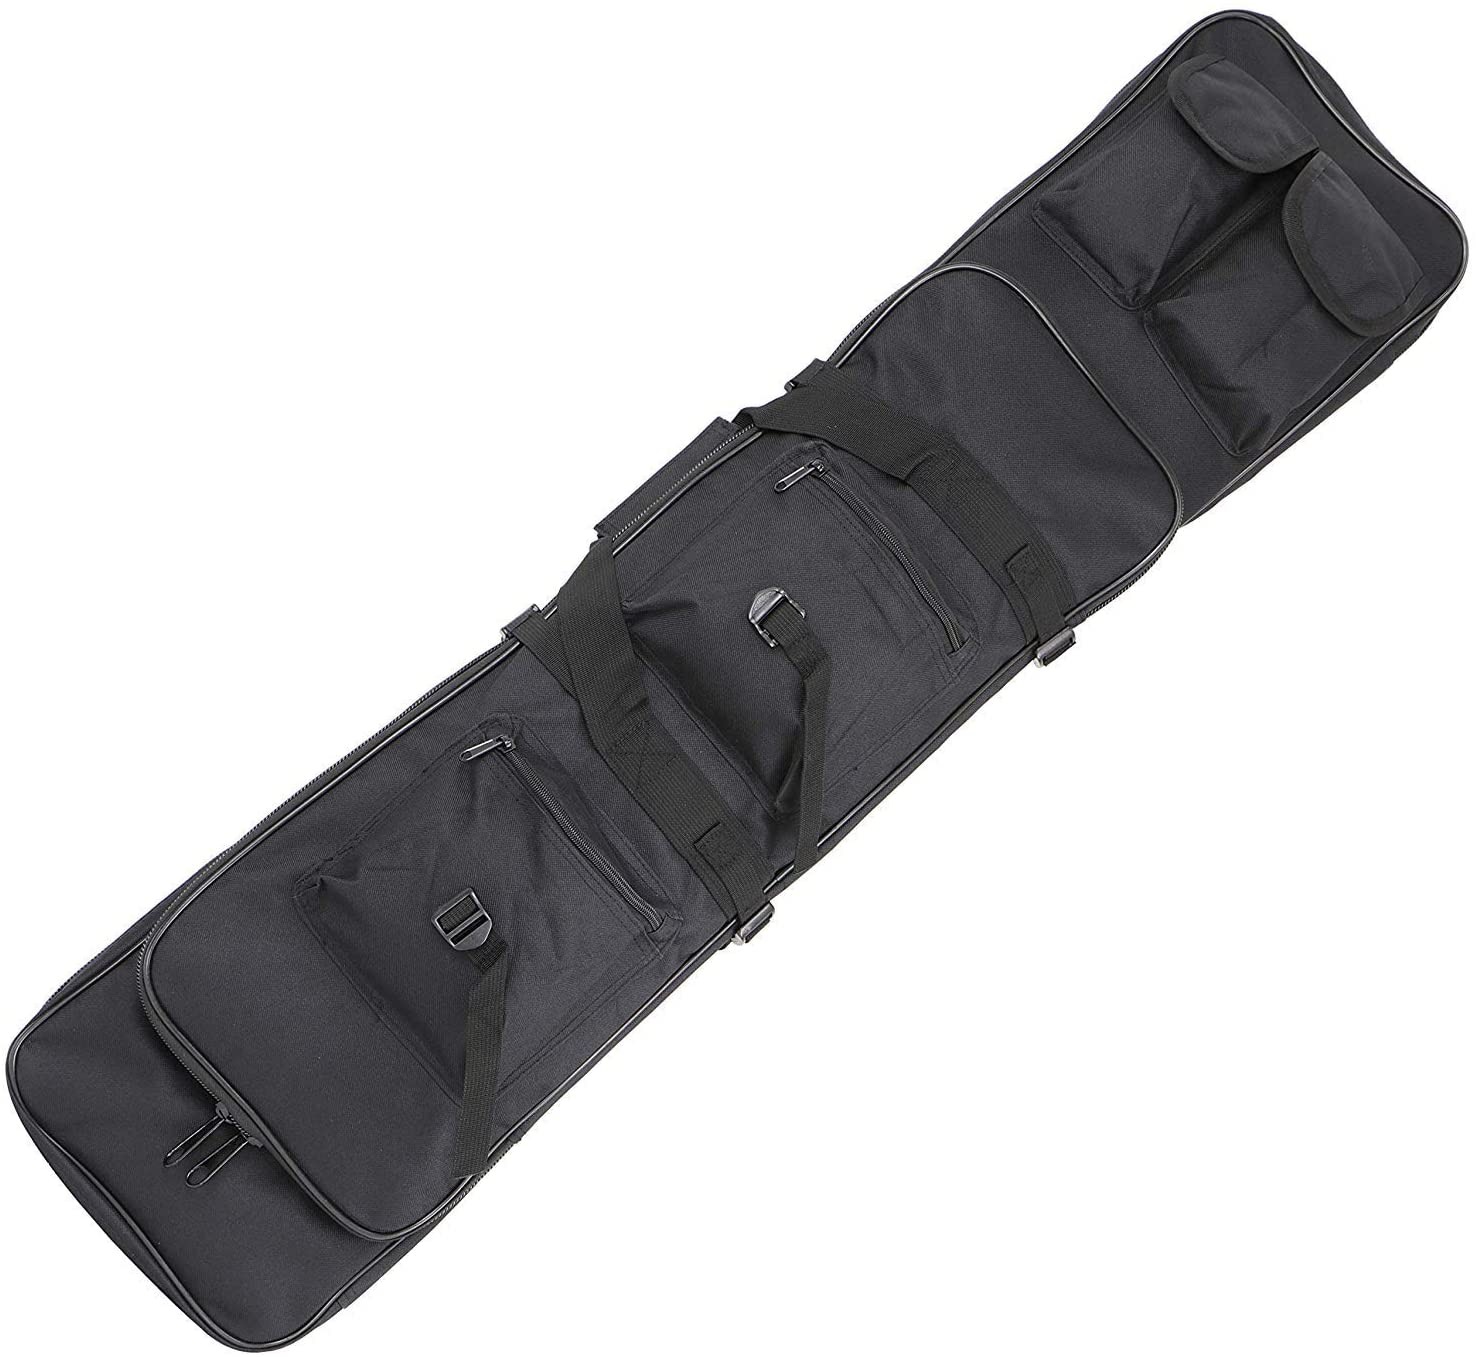 Sutekus Tactical Double Max 79% OFF Gun Case Rifle Cheap mail order specialty store Padded Stora